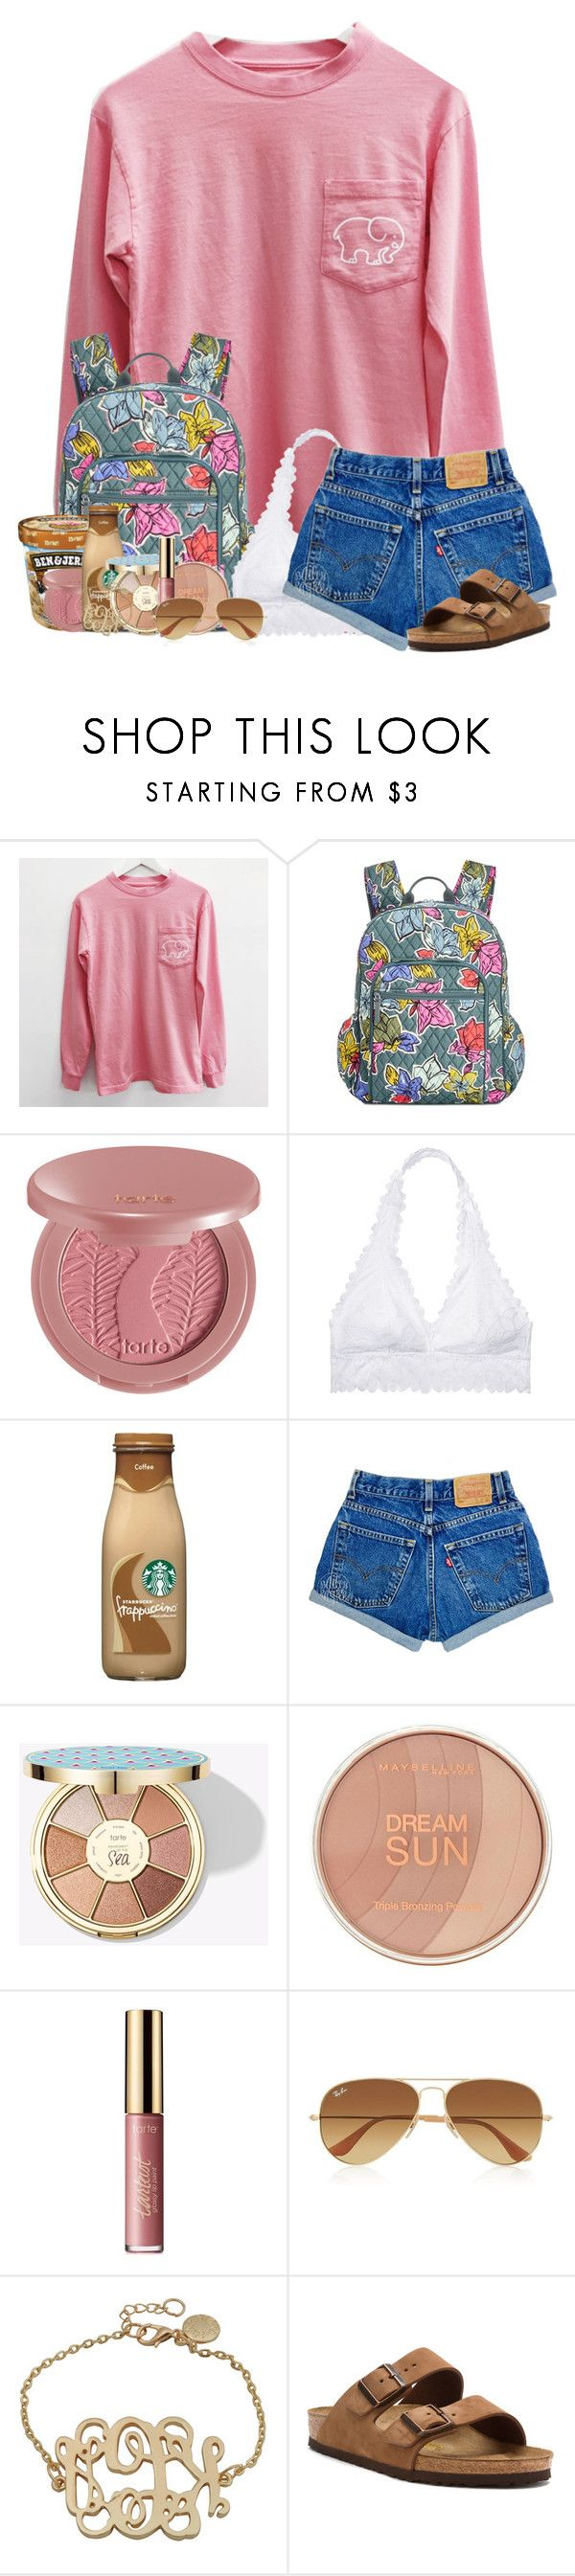 """""""RTD ( if u want to , it's not important, it's just funny )"""" by abigailcdunn ❤ liked on Polyvore featuring Vera Bradley, tarte, Victoria's Secret, Maybelline, Ray-Ban and Birkenstock"""